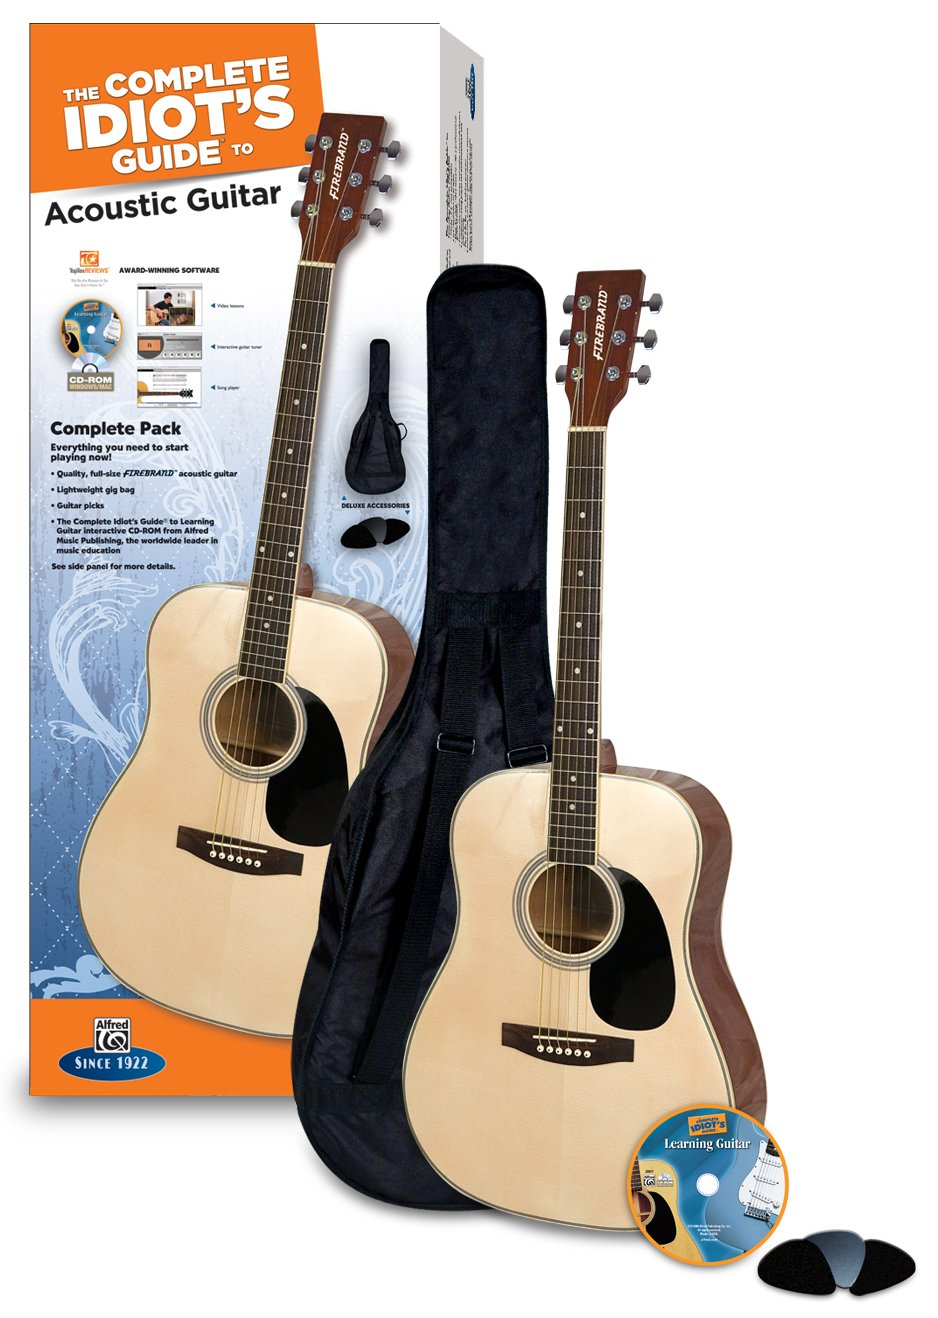 Complete Idiot's Guide Acoustic Guitar Pack